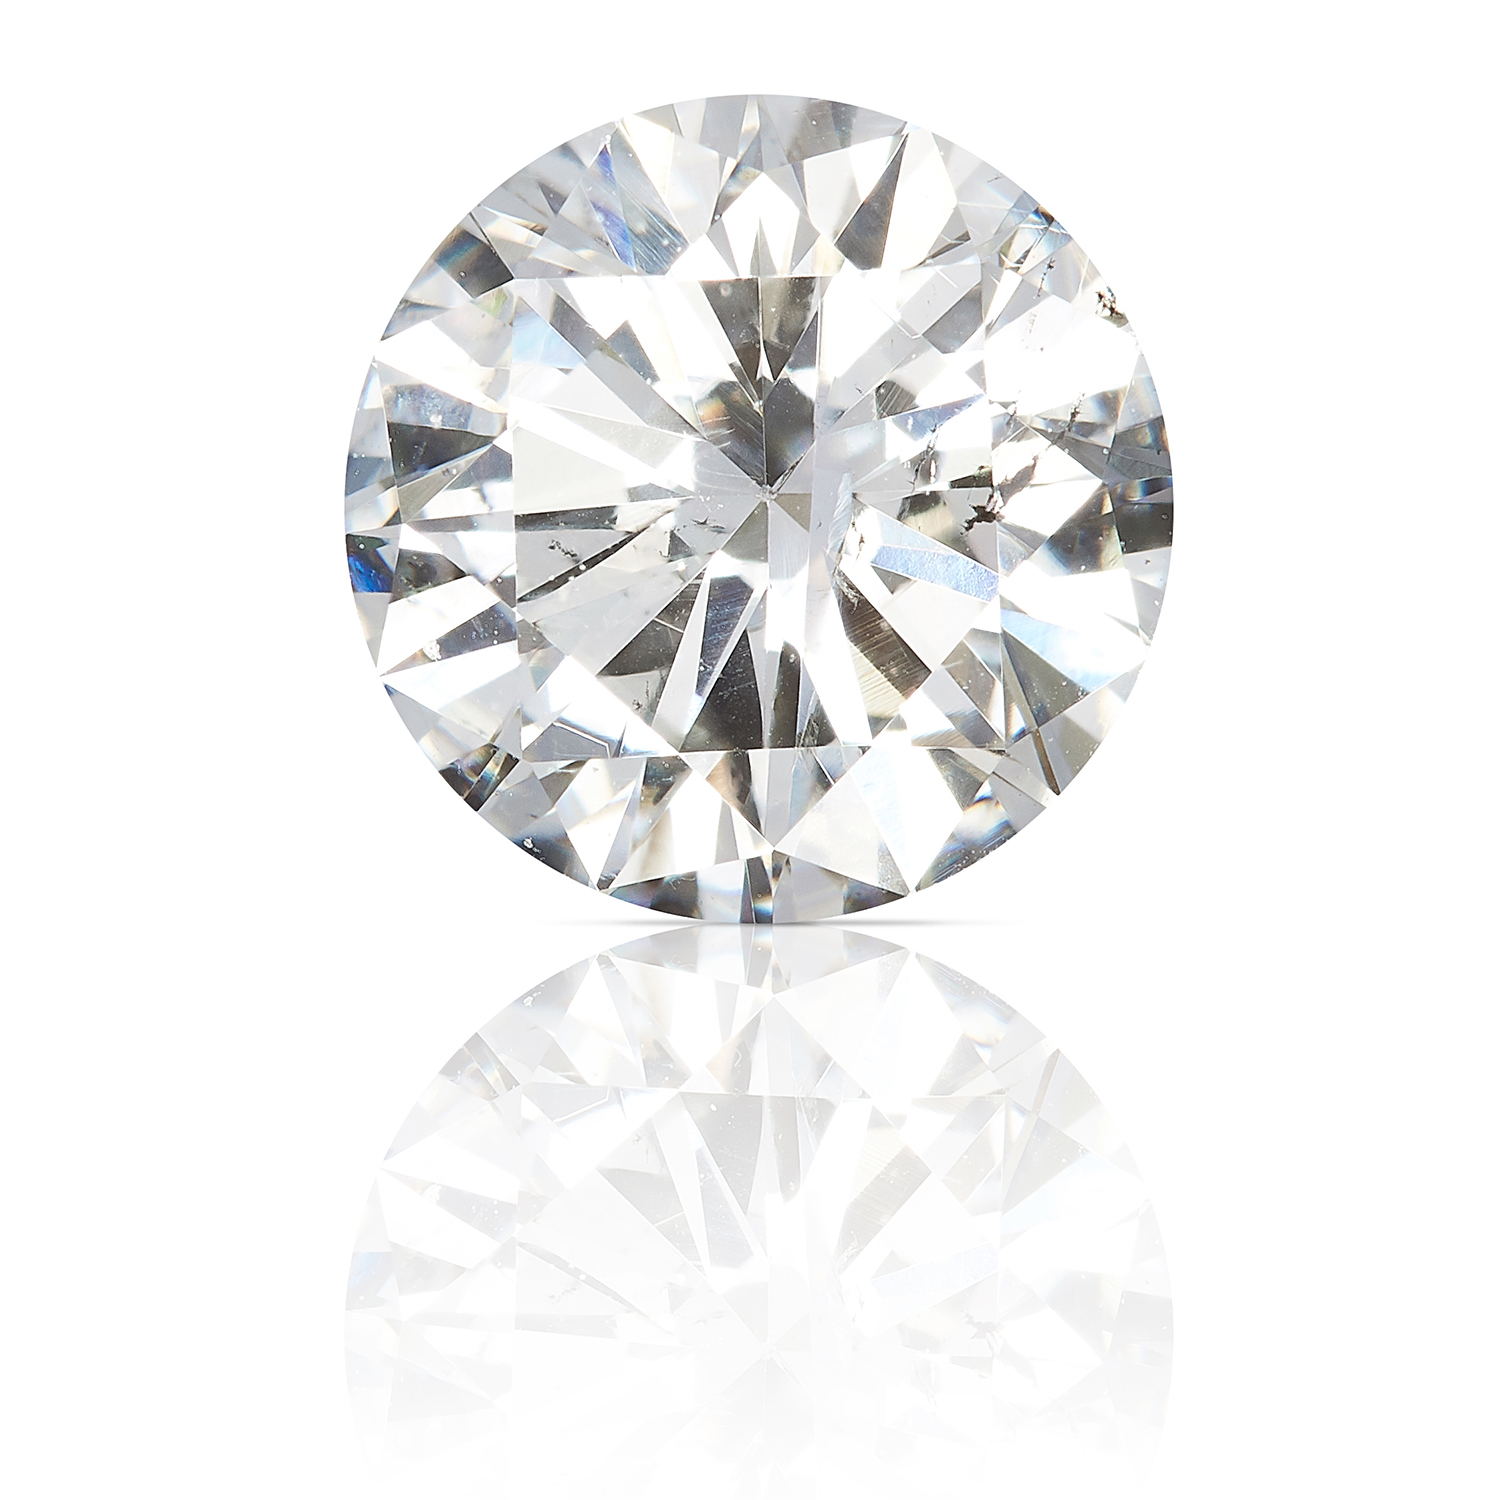 A ROUND CUT MODERN BRILLIANT DIAMOND TOTALLING 0.86cts, UNMOUNTED.